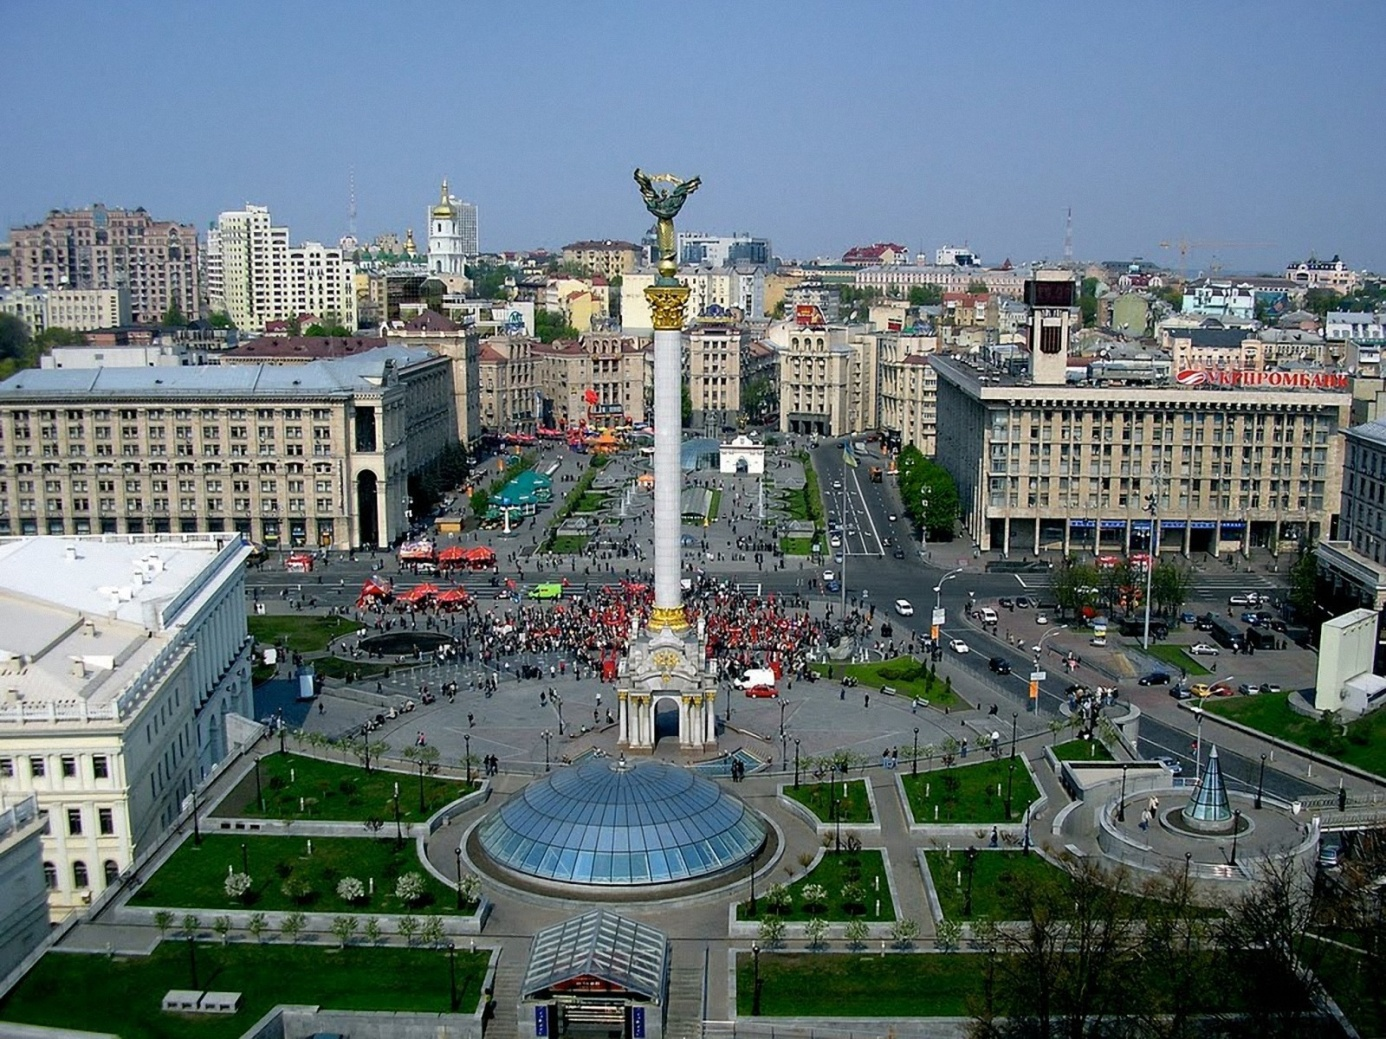 C:\Users\User\Downloads\ws_Kiev_Square_1600x1200.jpg